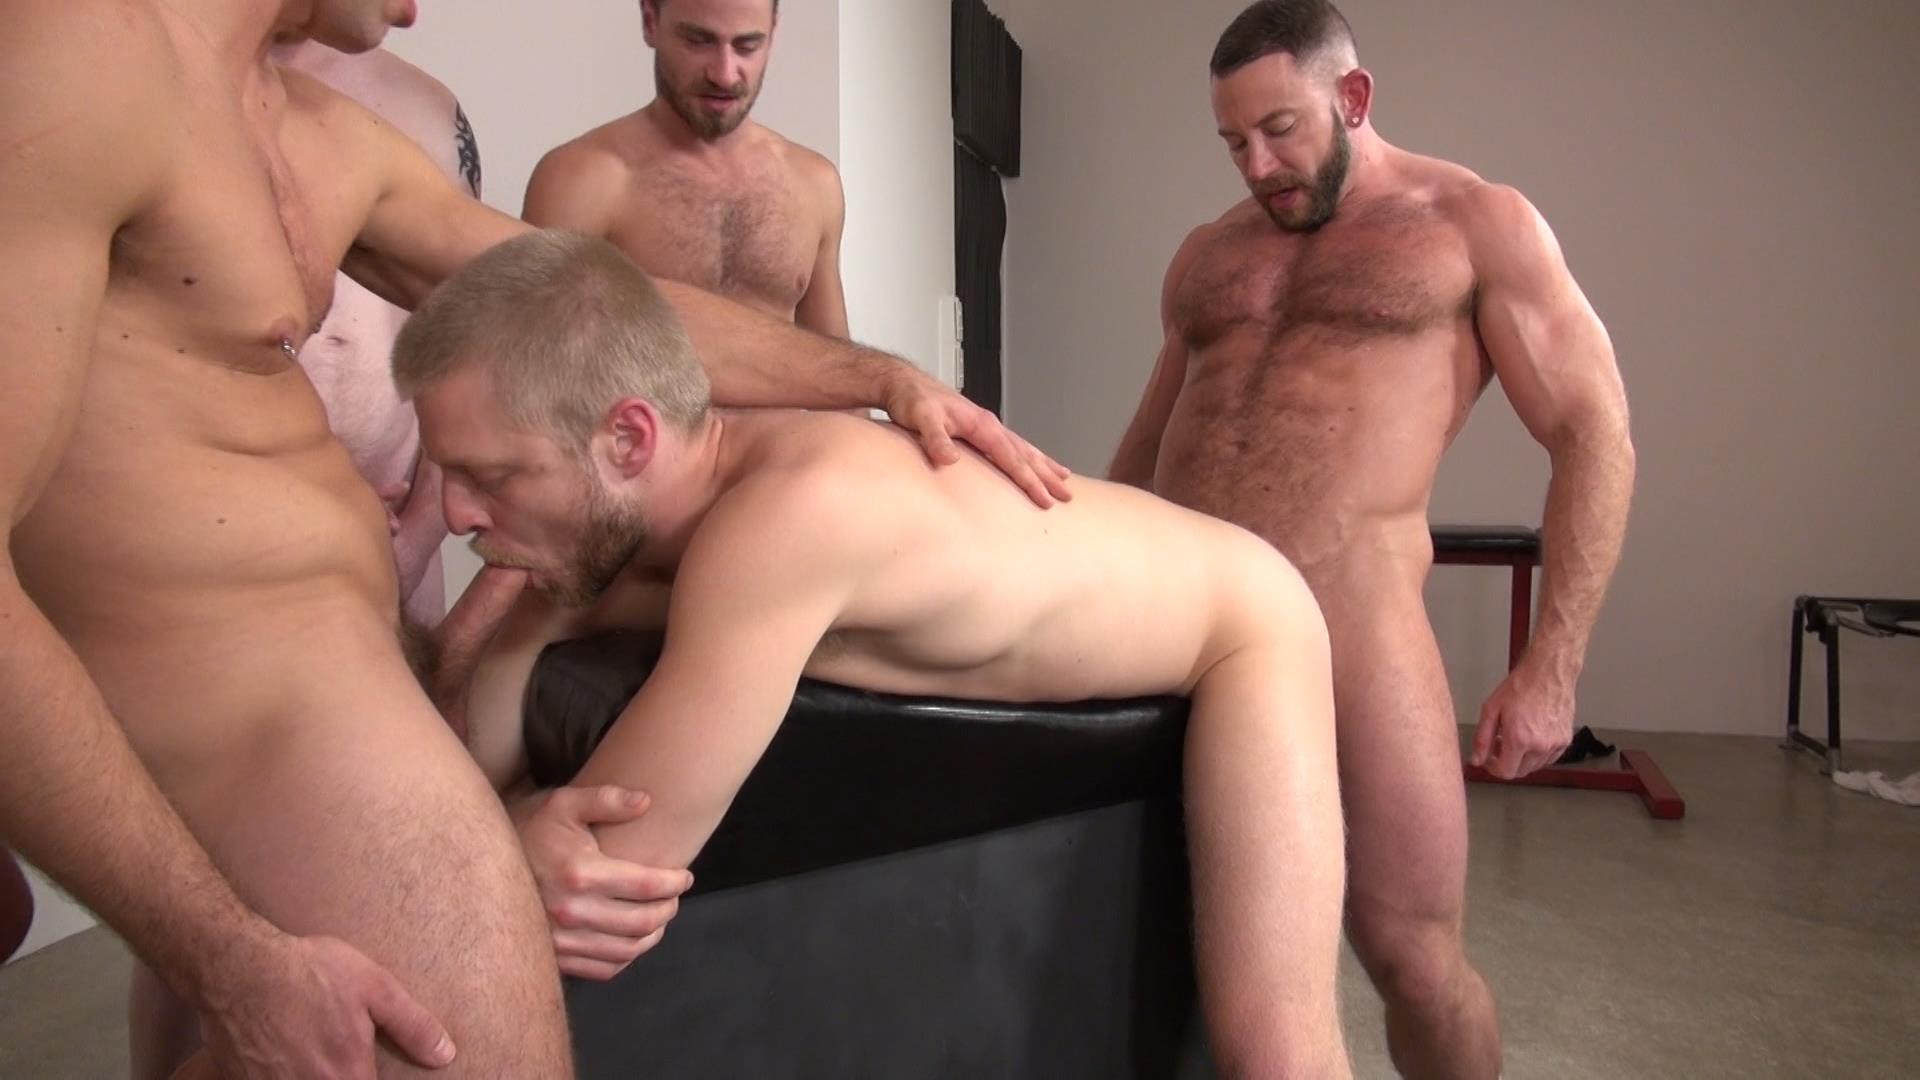 Raw and Rough Bareback Gay Sex Orgy Amateur Gay Porn 09 Six Hairy Hung Guys Pounding A Bottom At A Bareback Sex Party